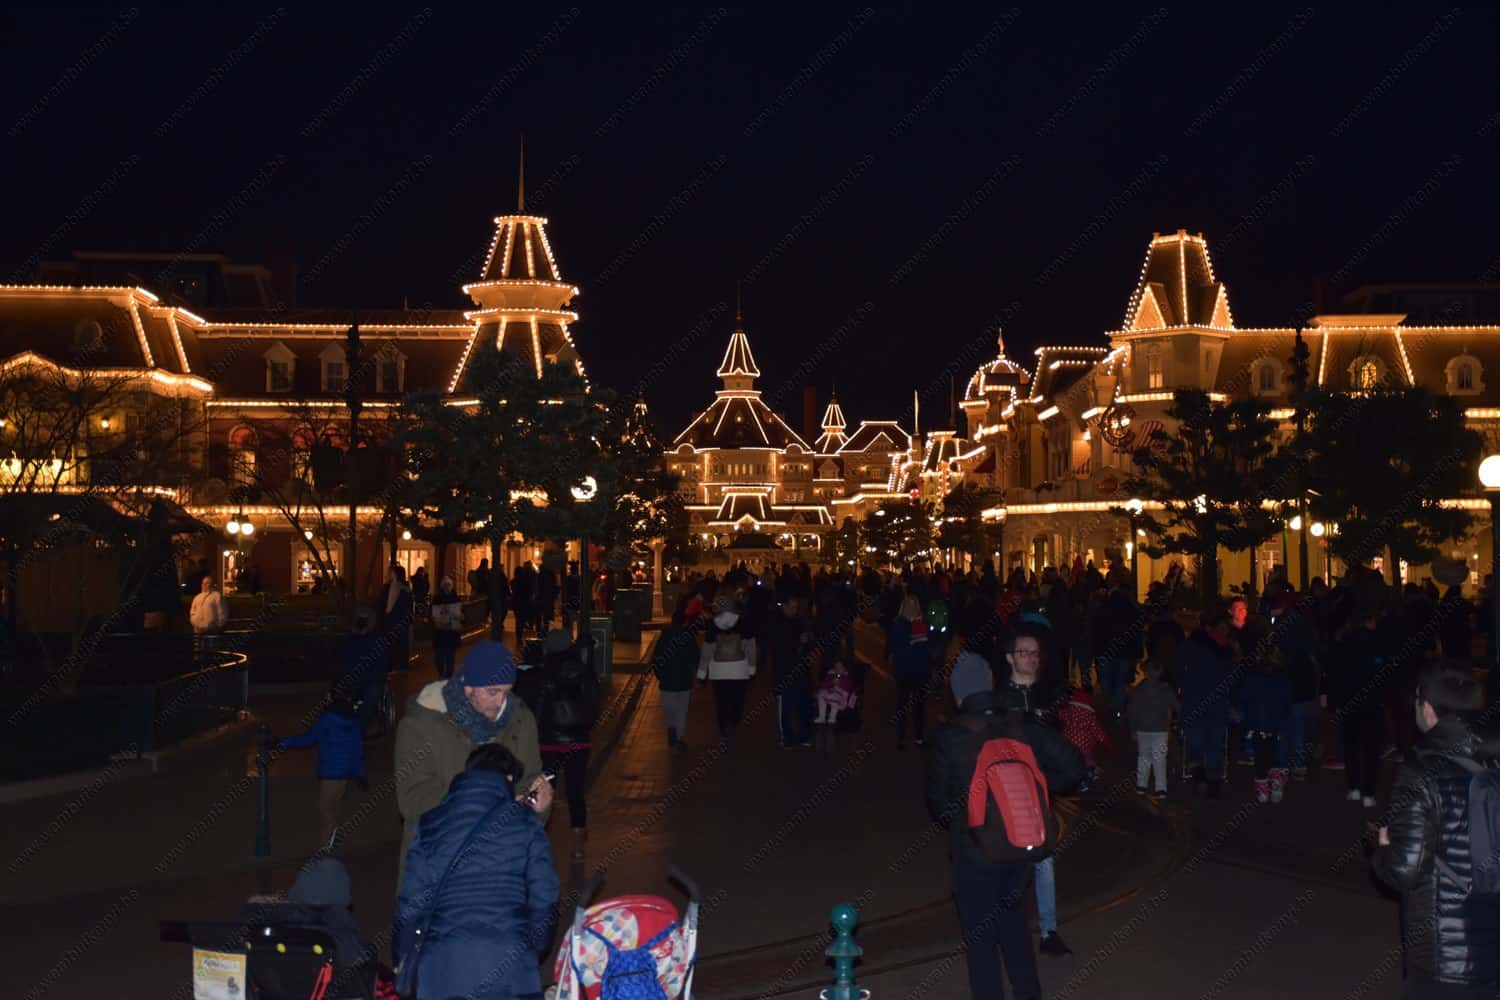 Disneyland Paris at Night